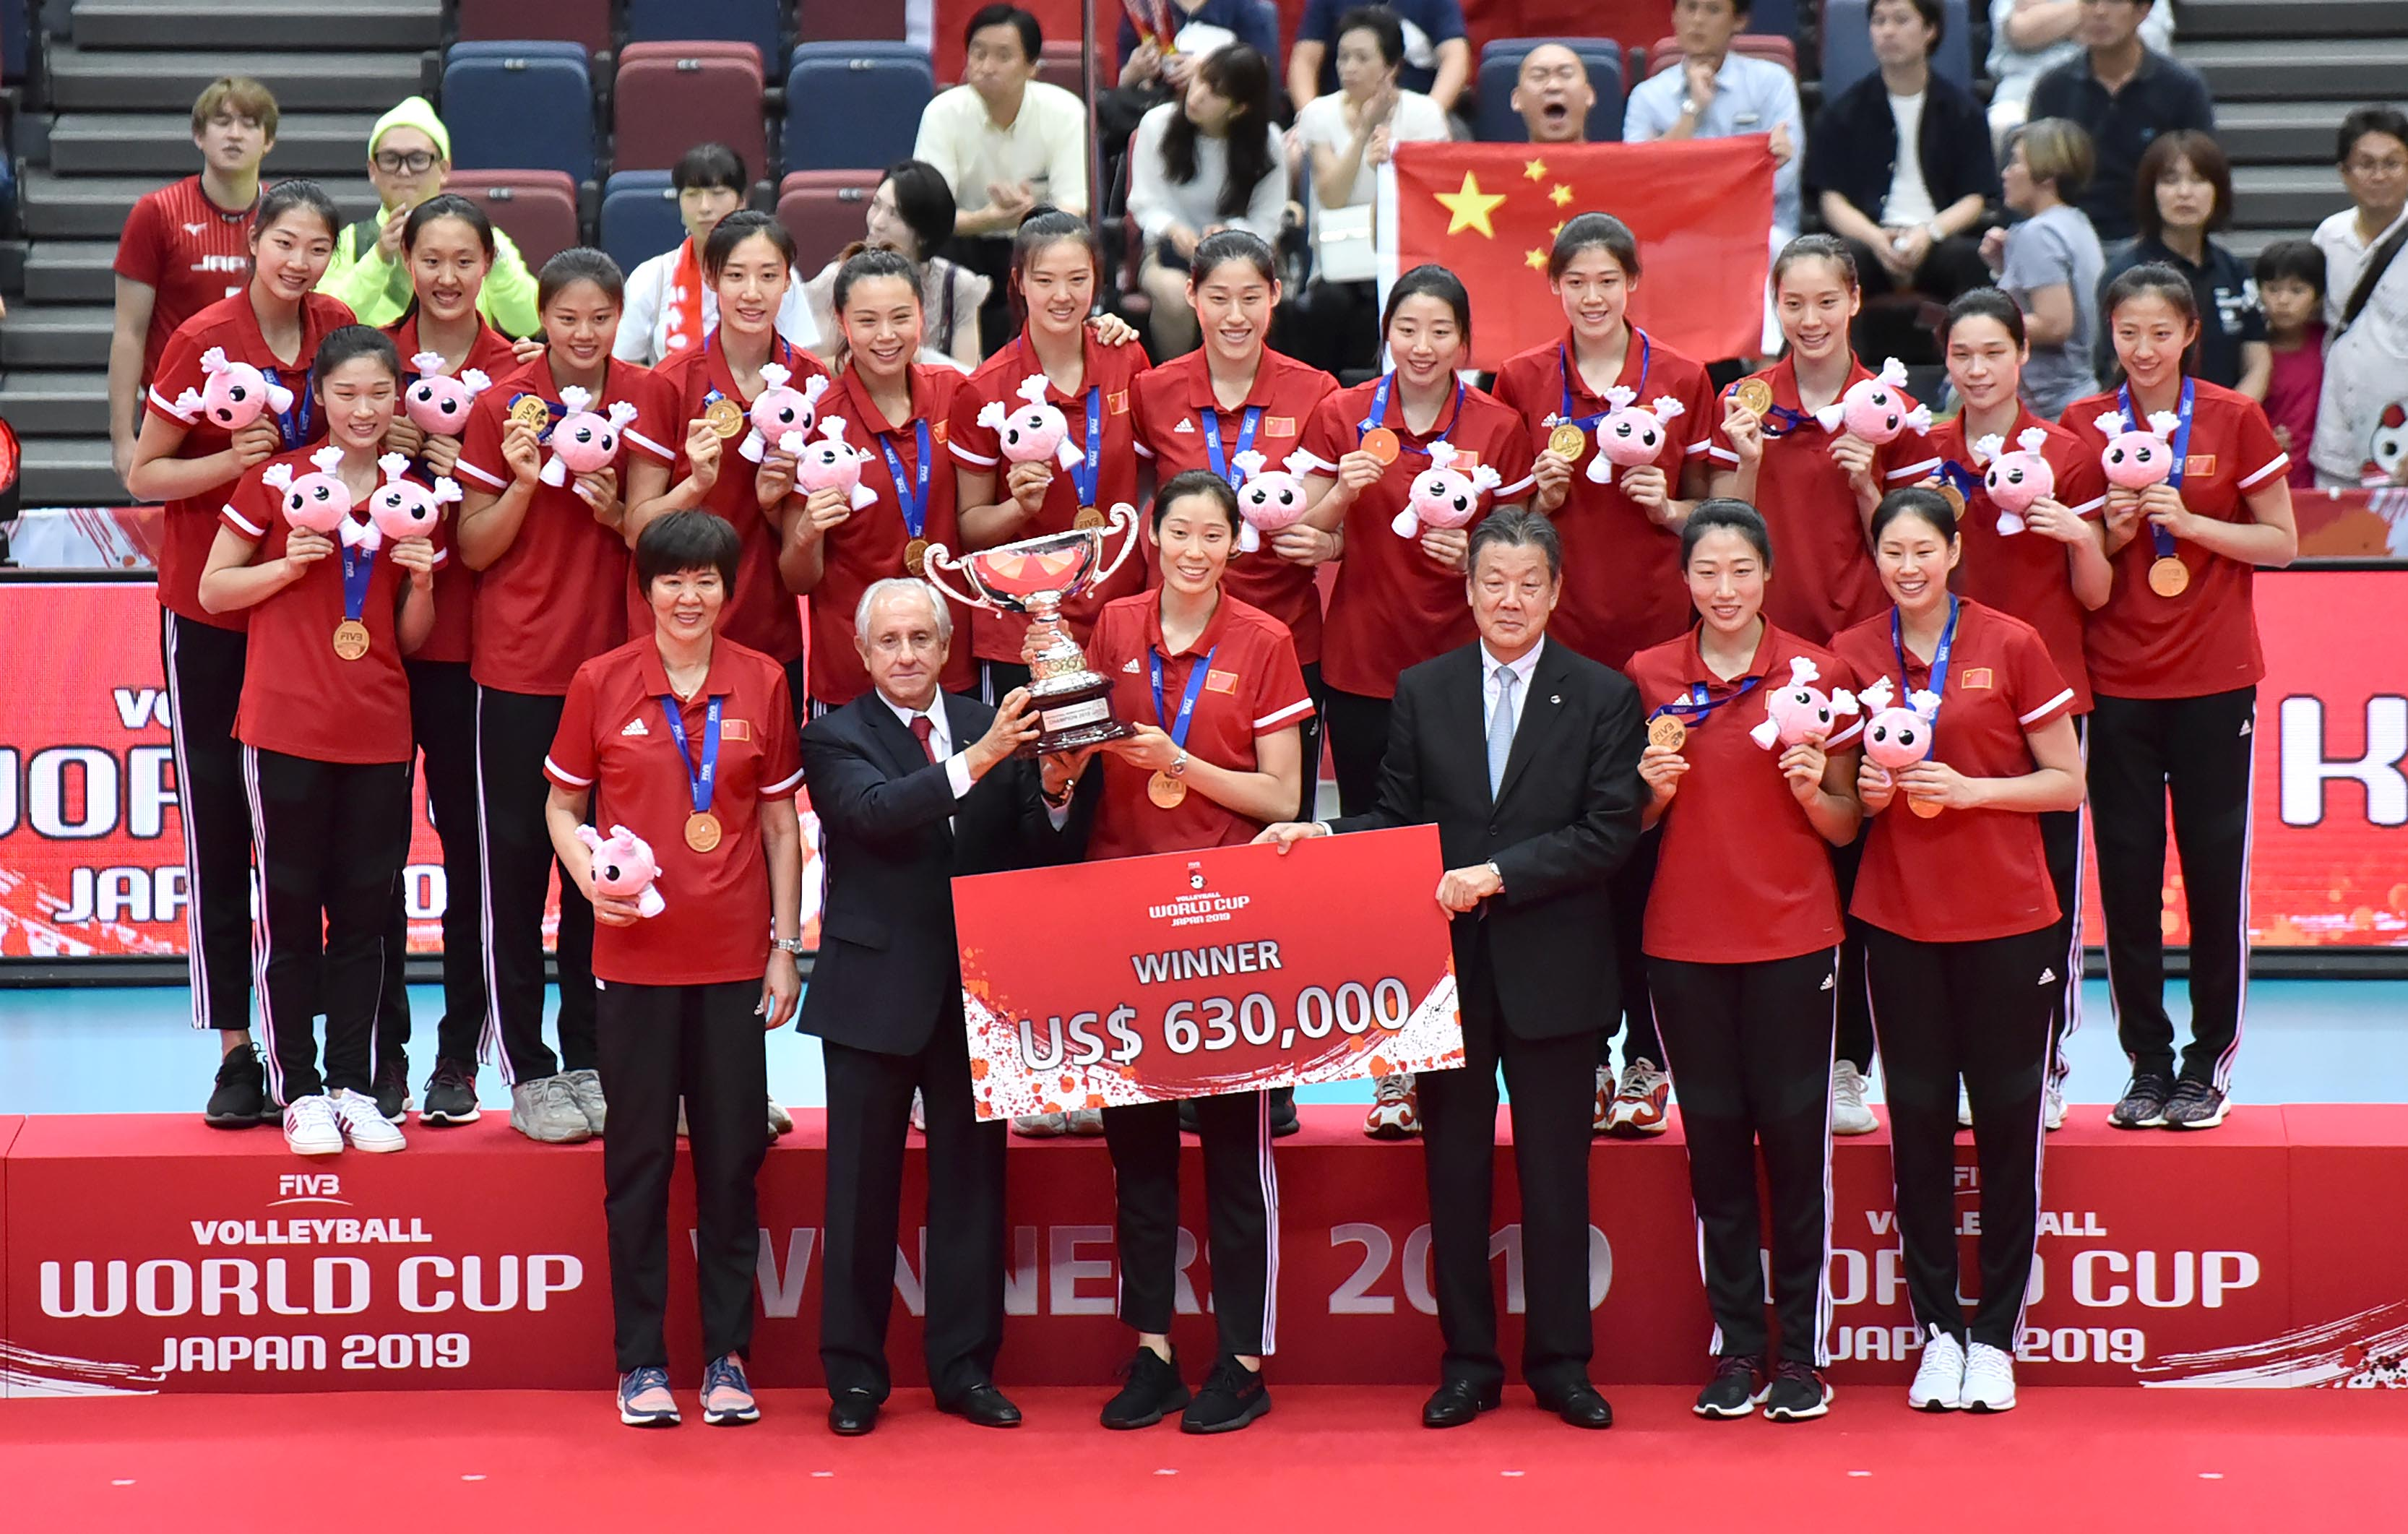 La Chine remporte la FIVB World Cup Féminine 2019 au Japon